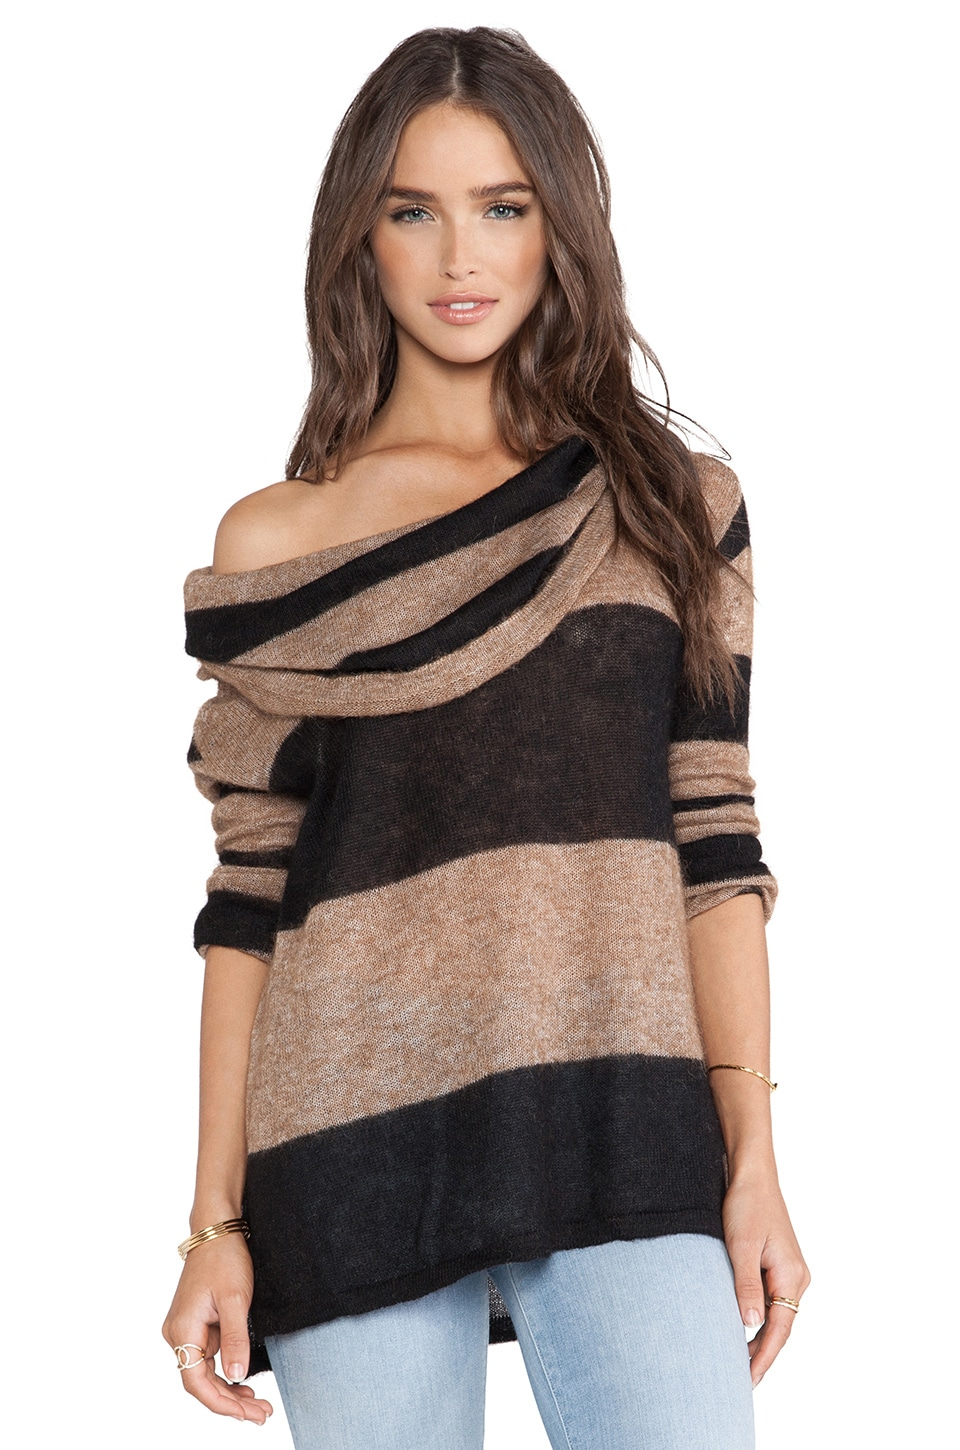 Free People Lulu Rugby Stripe Cowl Sweater in Taupe & Black Combo